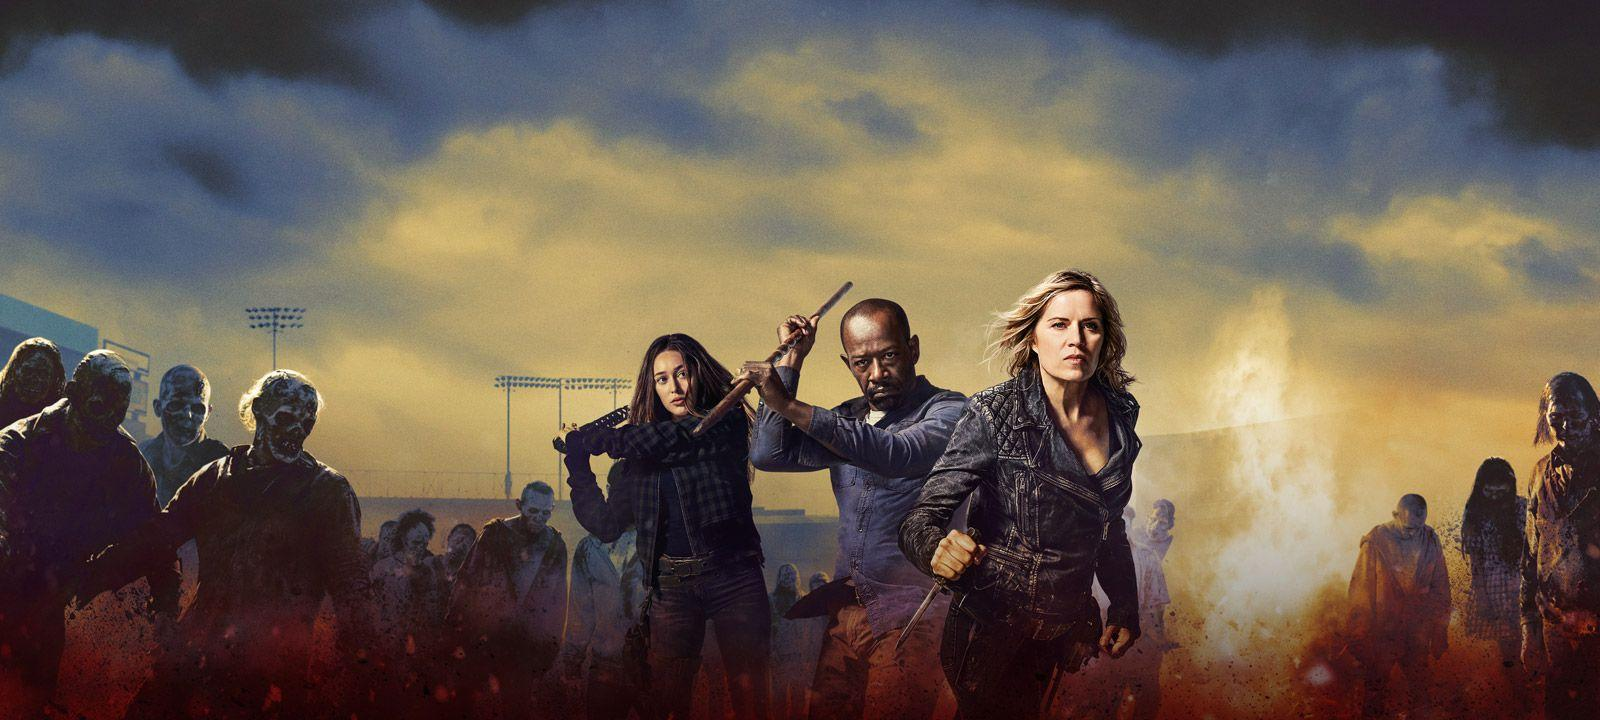 Die 8 Top-Serien 2018 auf Amazon Prime und 2 Flops: Fear the Walking Dead